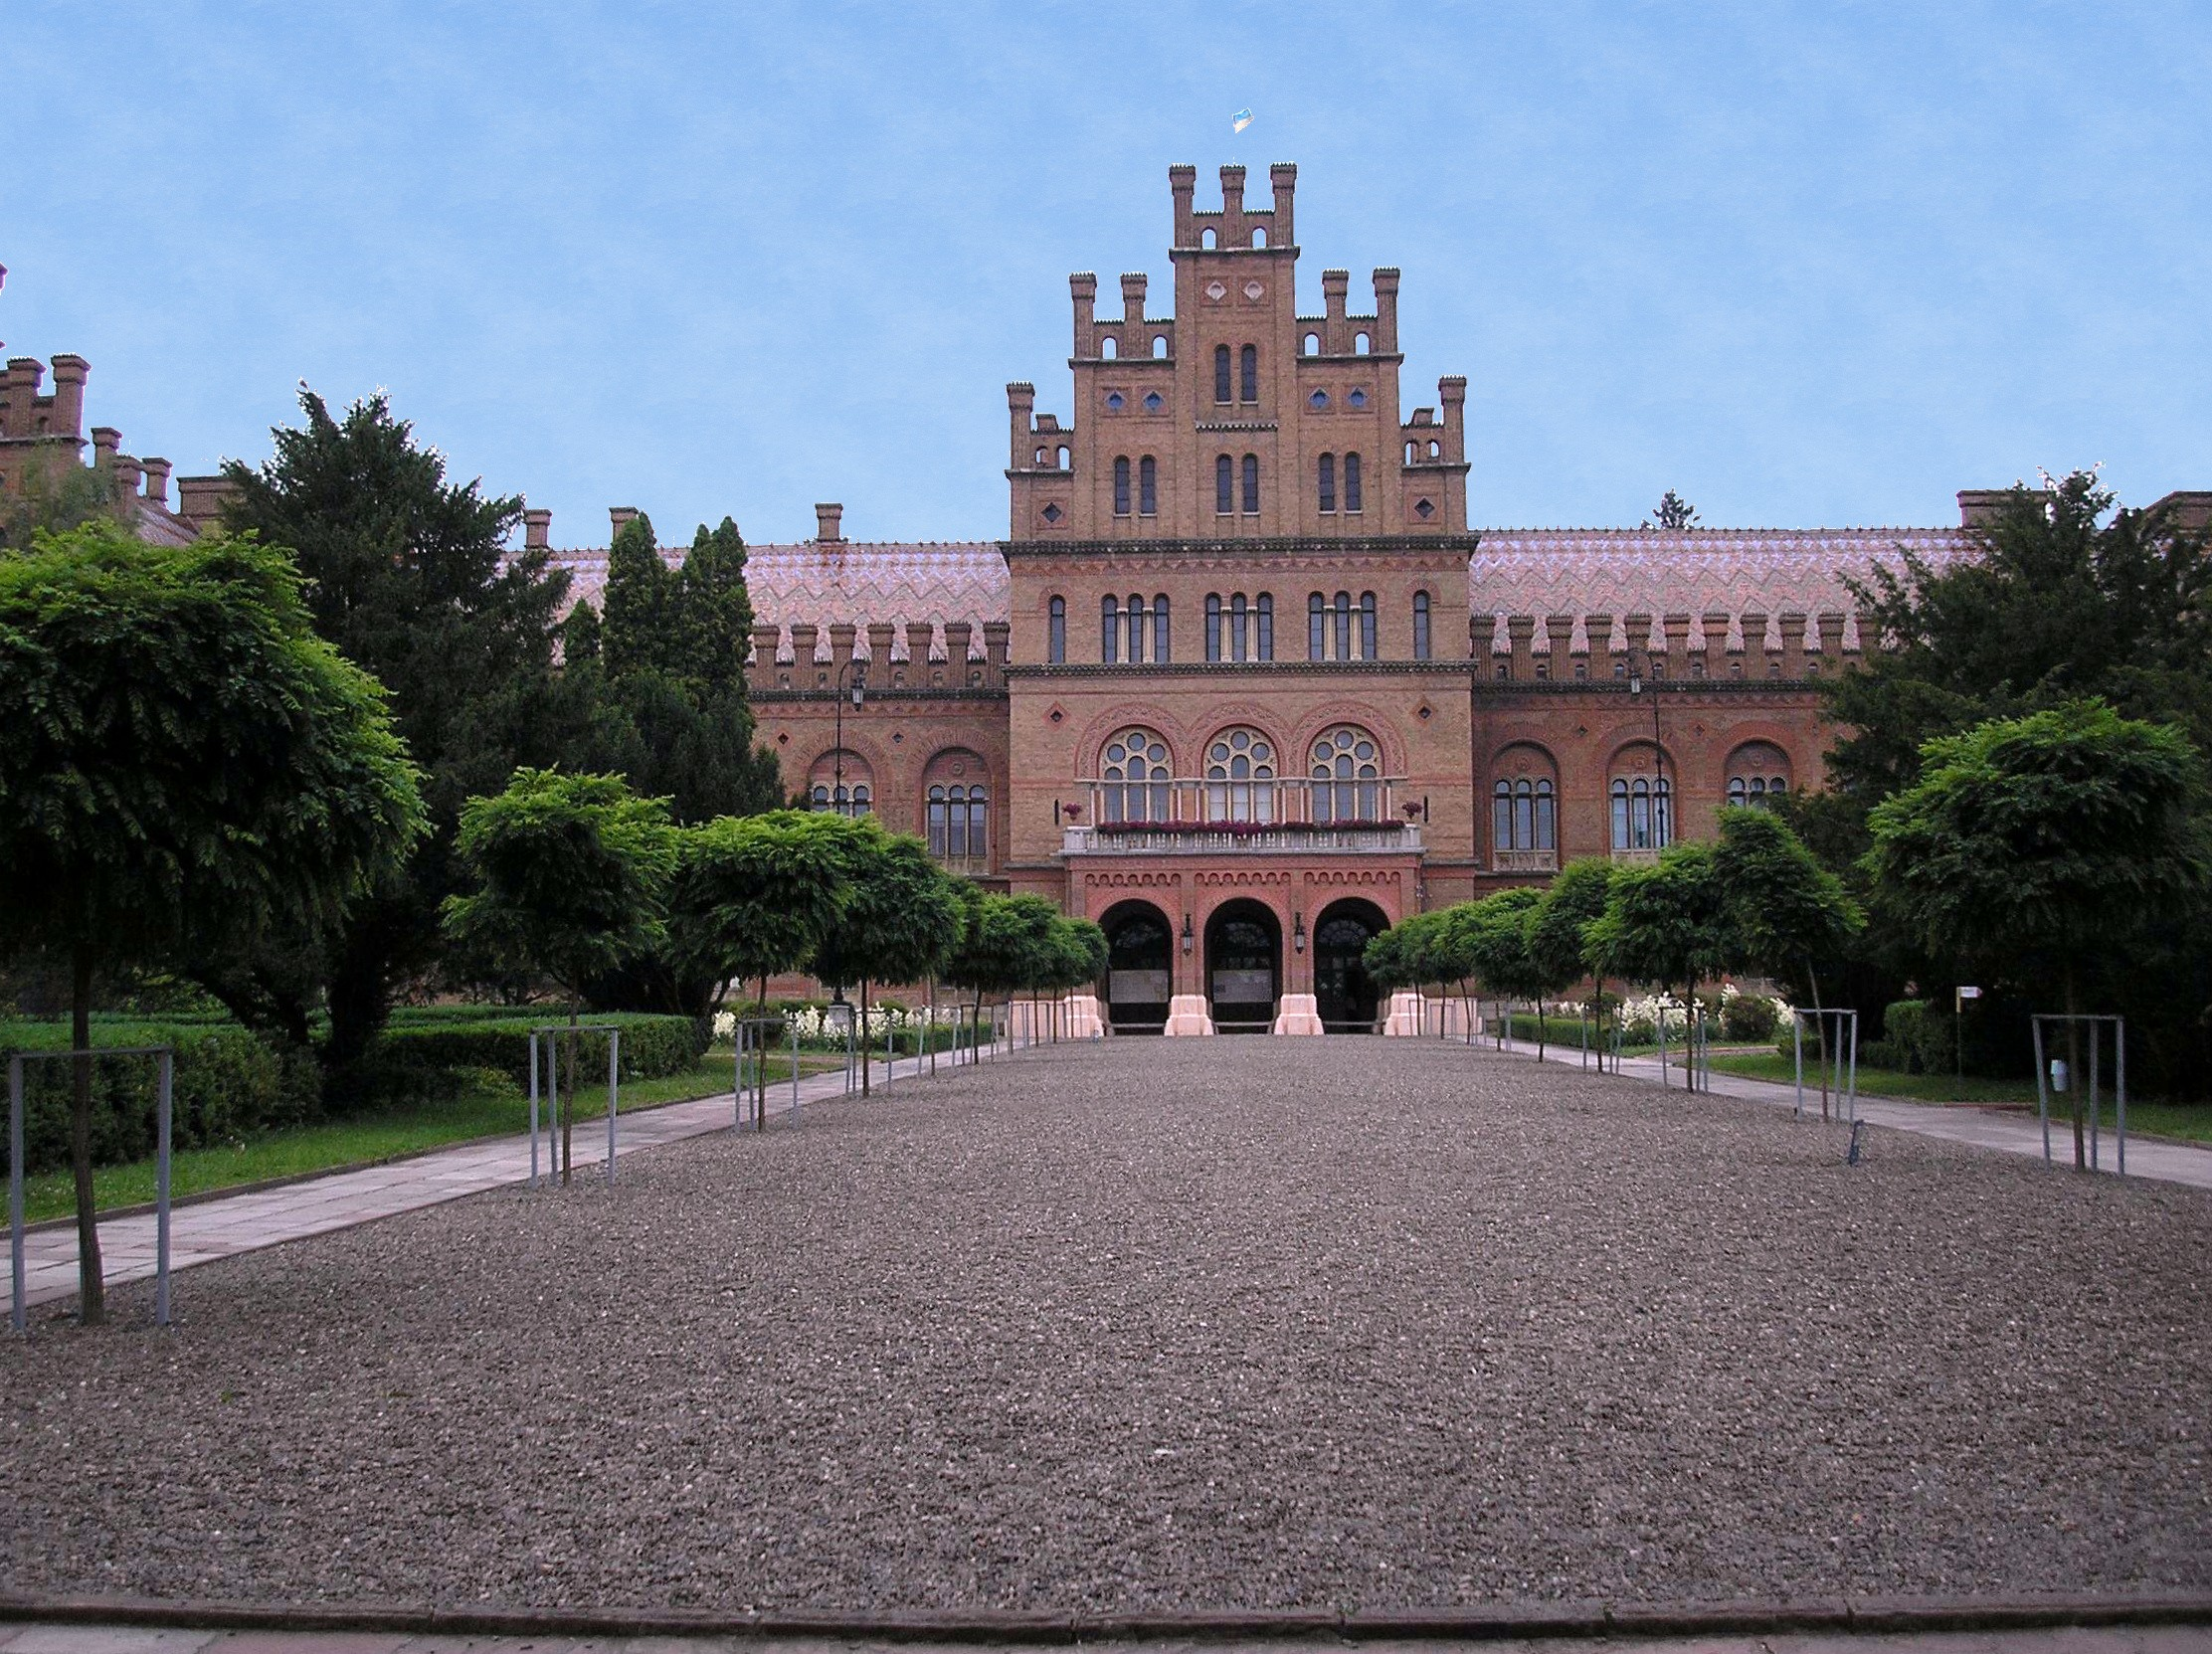 The front fa§ade of the Chernivtsi University the former residence of the Metropolitans of Bukovyna